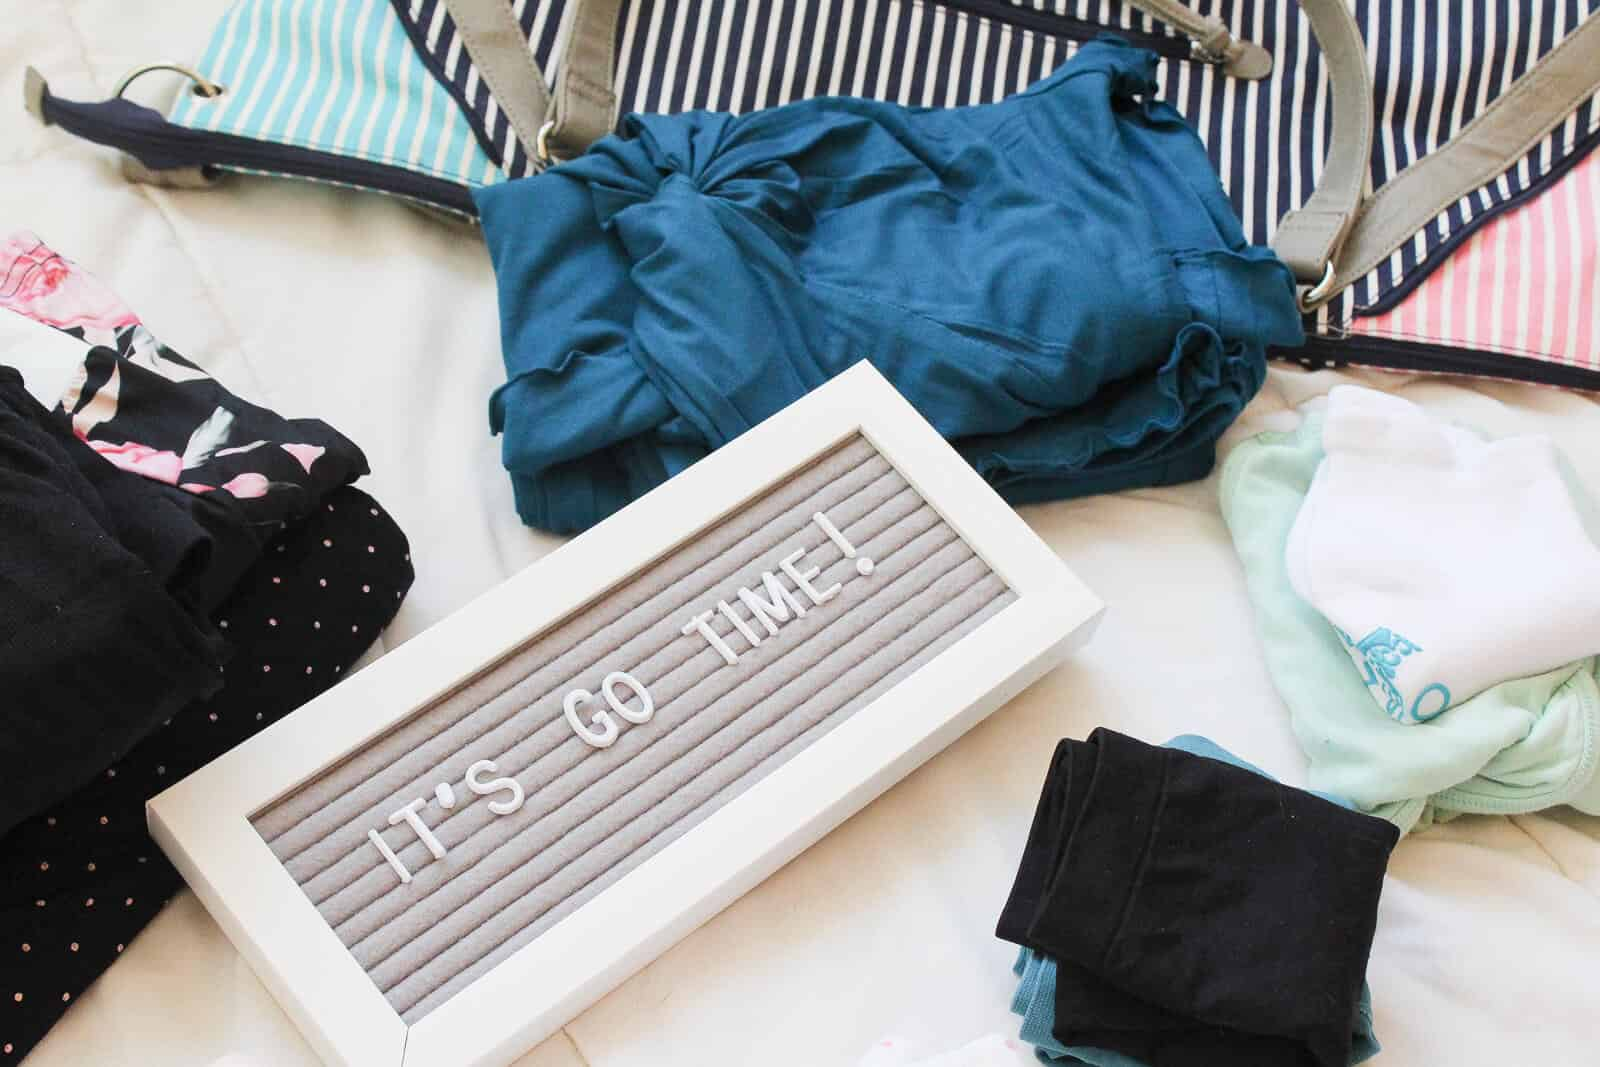 ""\""""It's go time"""" letter board next clothes and bag for hospital.""1600|1067|?|en|2|b2a3c09aeae085f11f5e56b4ec86a1d8|False|UNLIKELY|0.28162989020347595